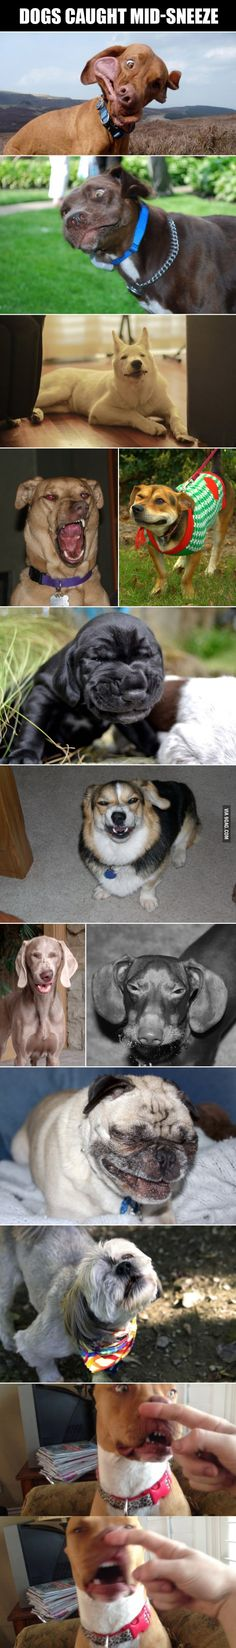 Dogs caught mid-sneeze. Laughed too hard at this!